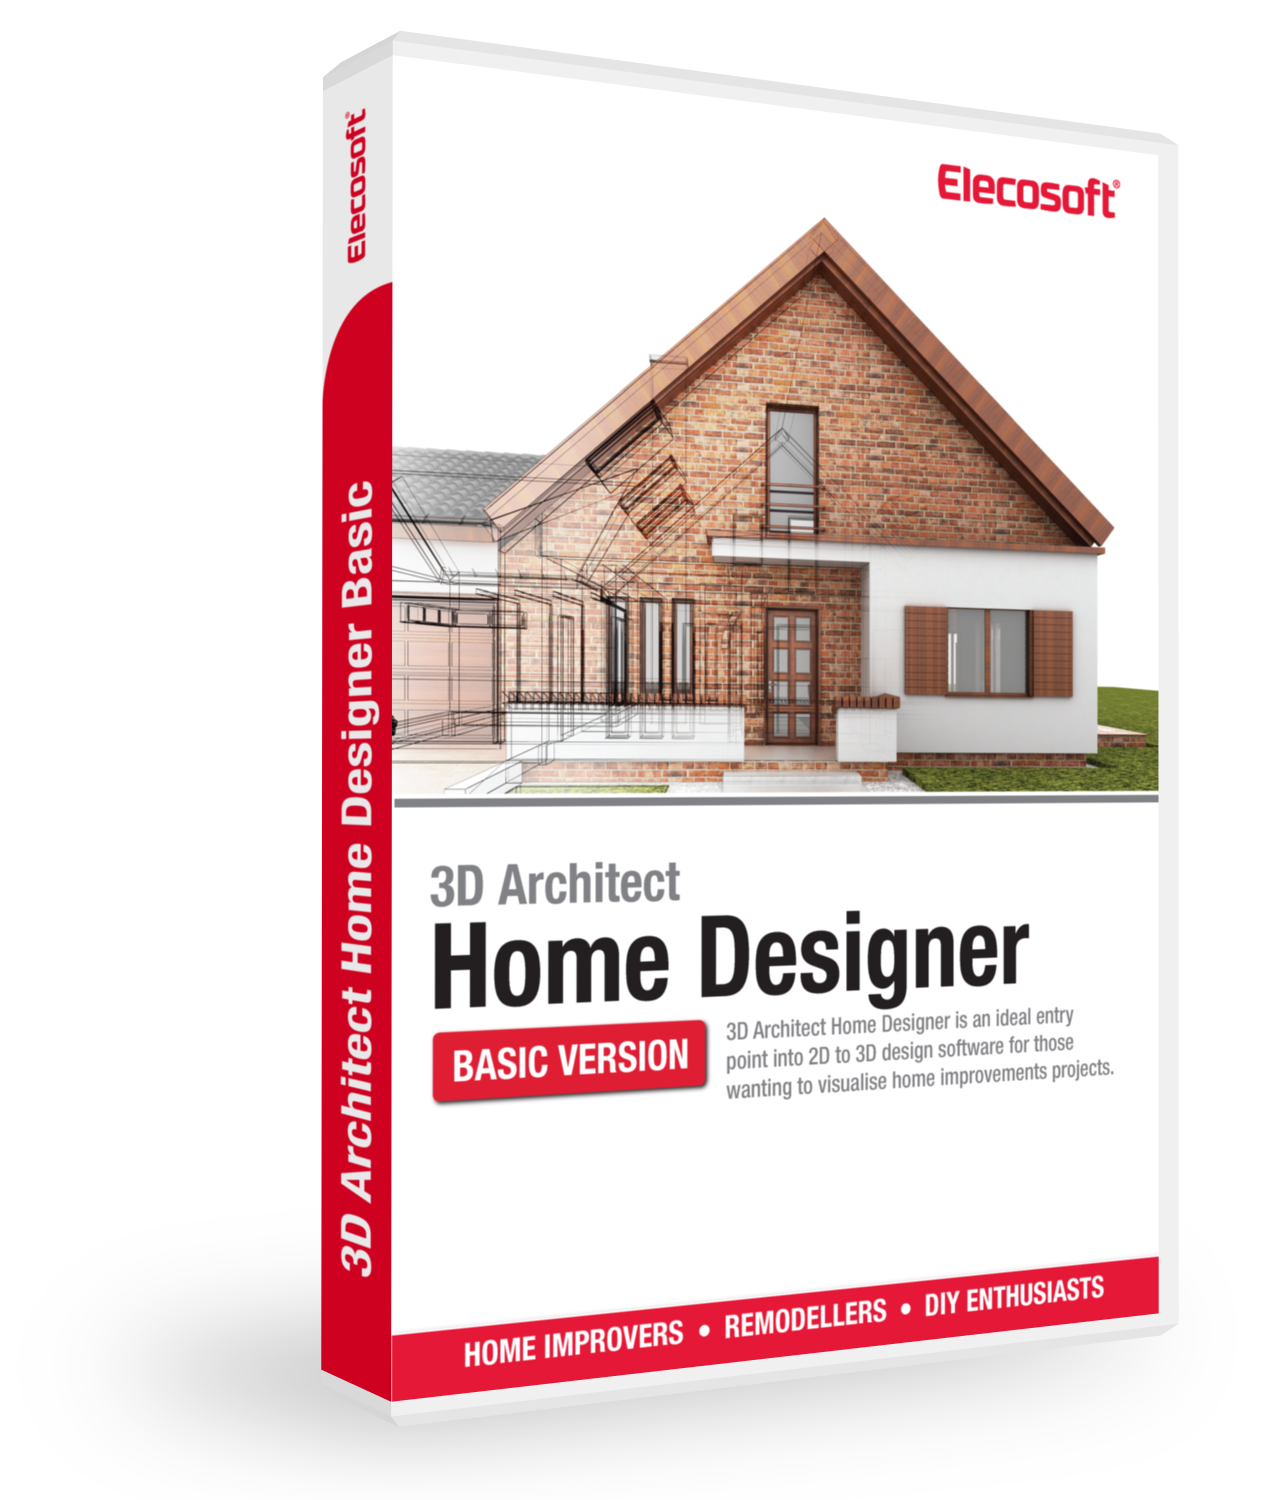 3d floor plan software for diy home projects Home layout design software